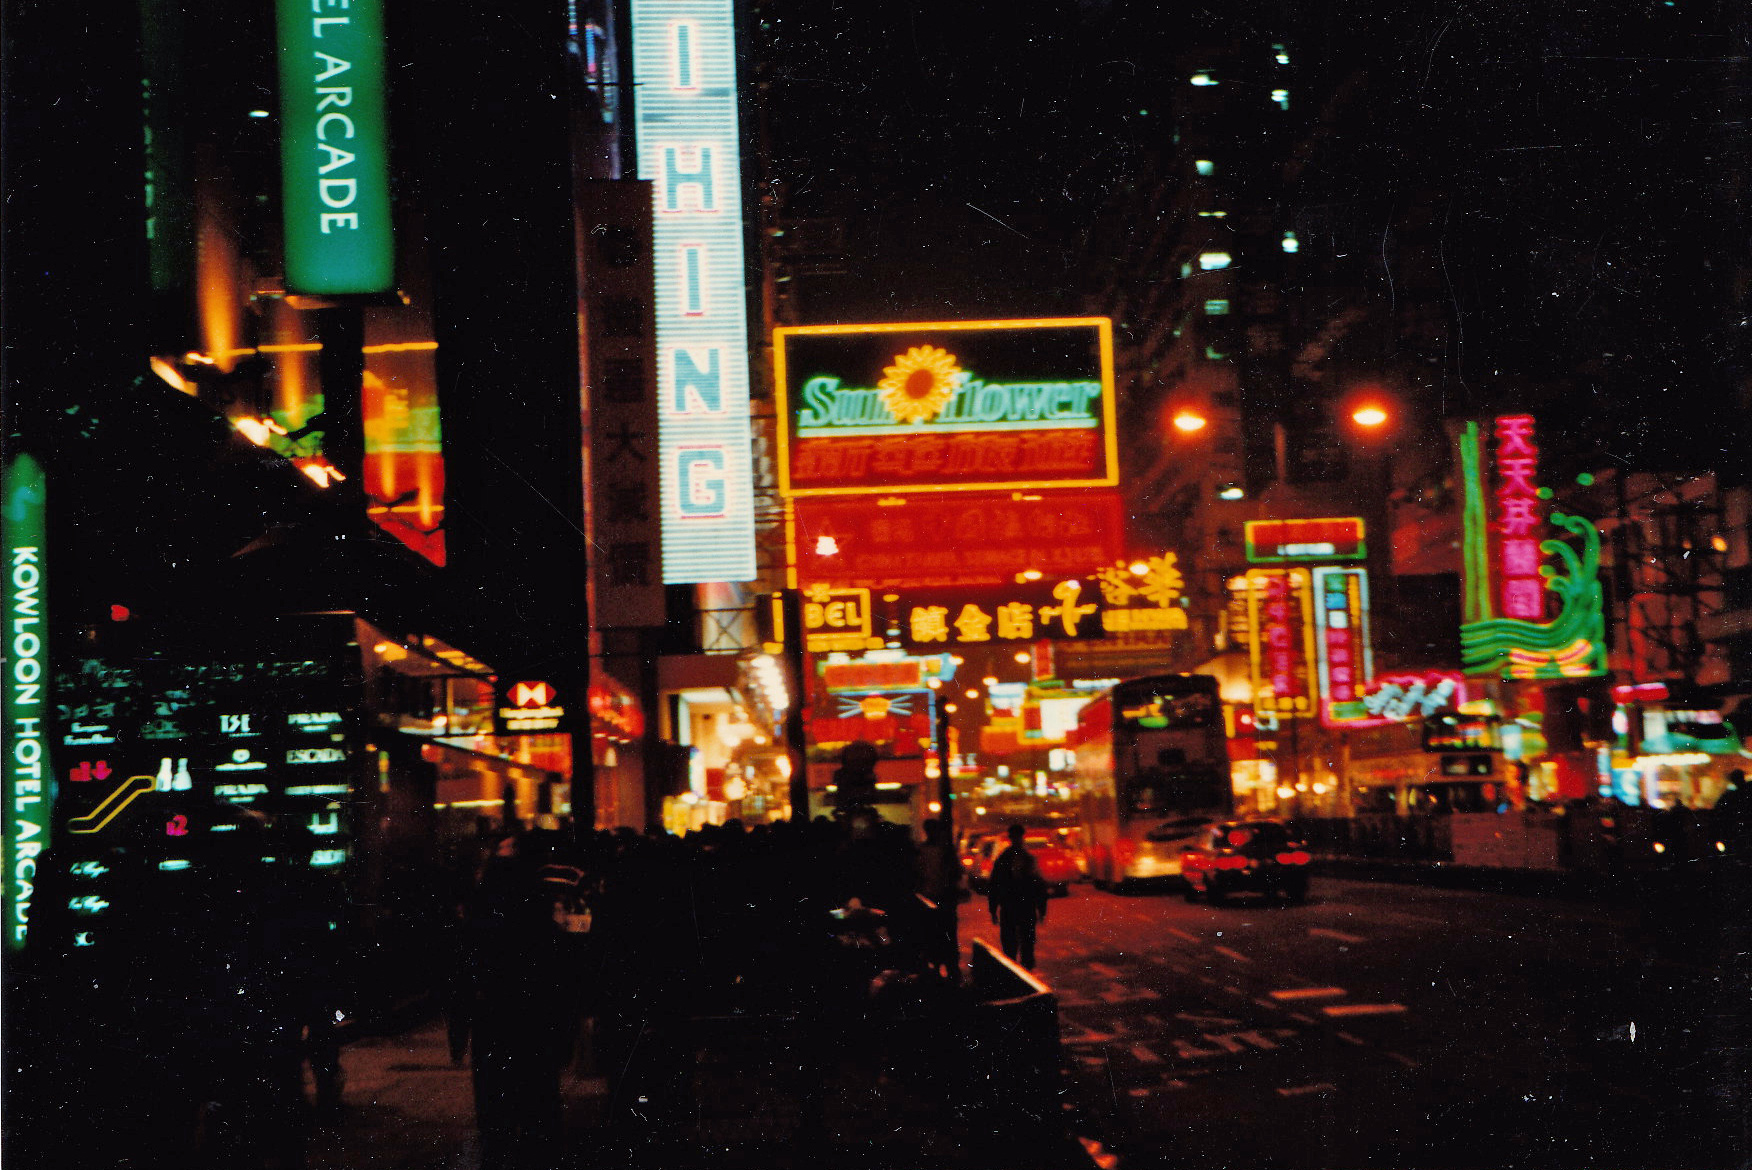 The sterilization of Nathan Road